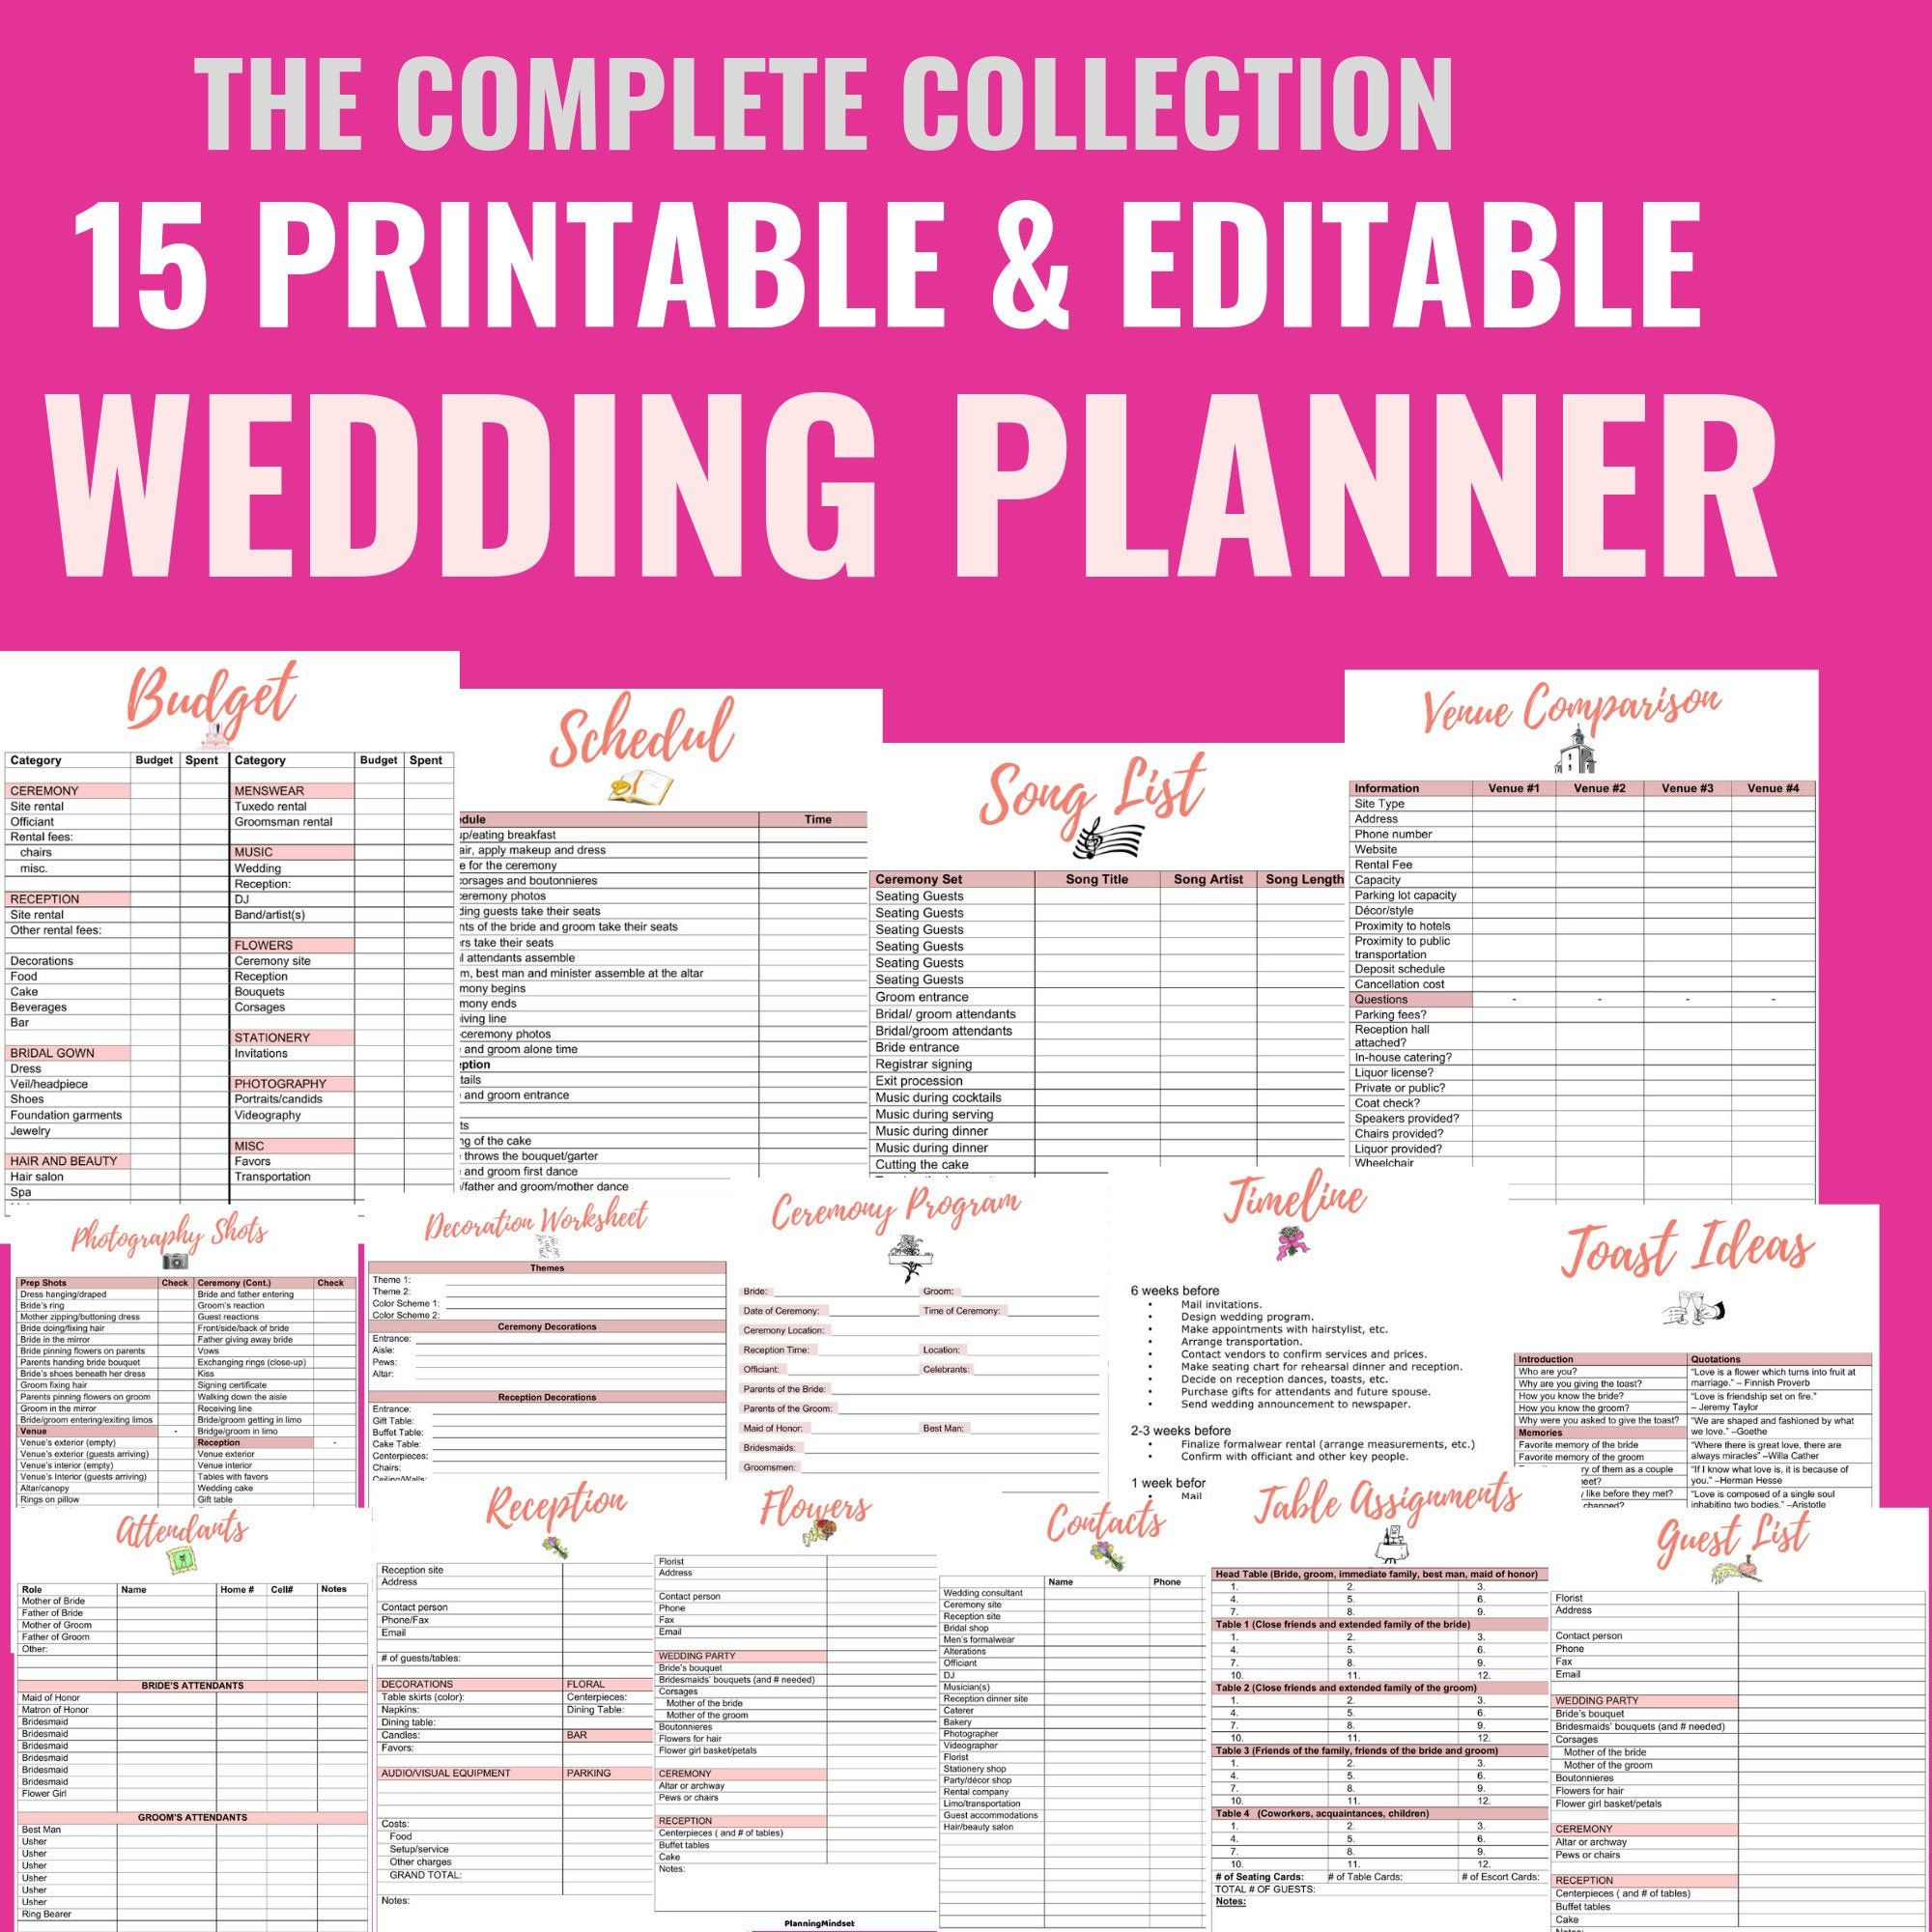 Printable Wedding Planner Collection 15 Printables Editable Wedding Checklists Wedding Planner Printables